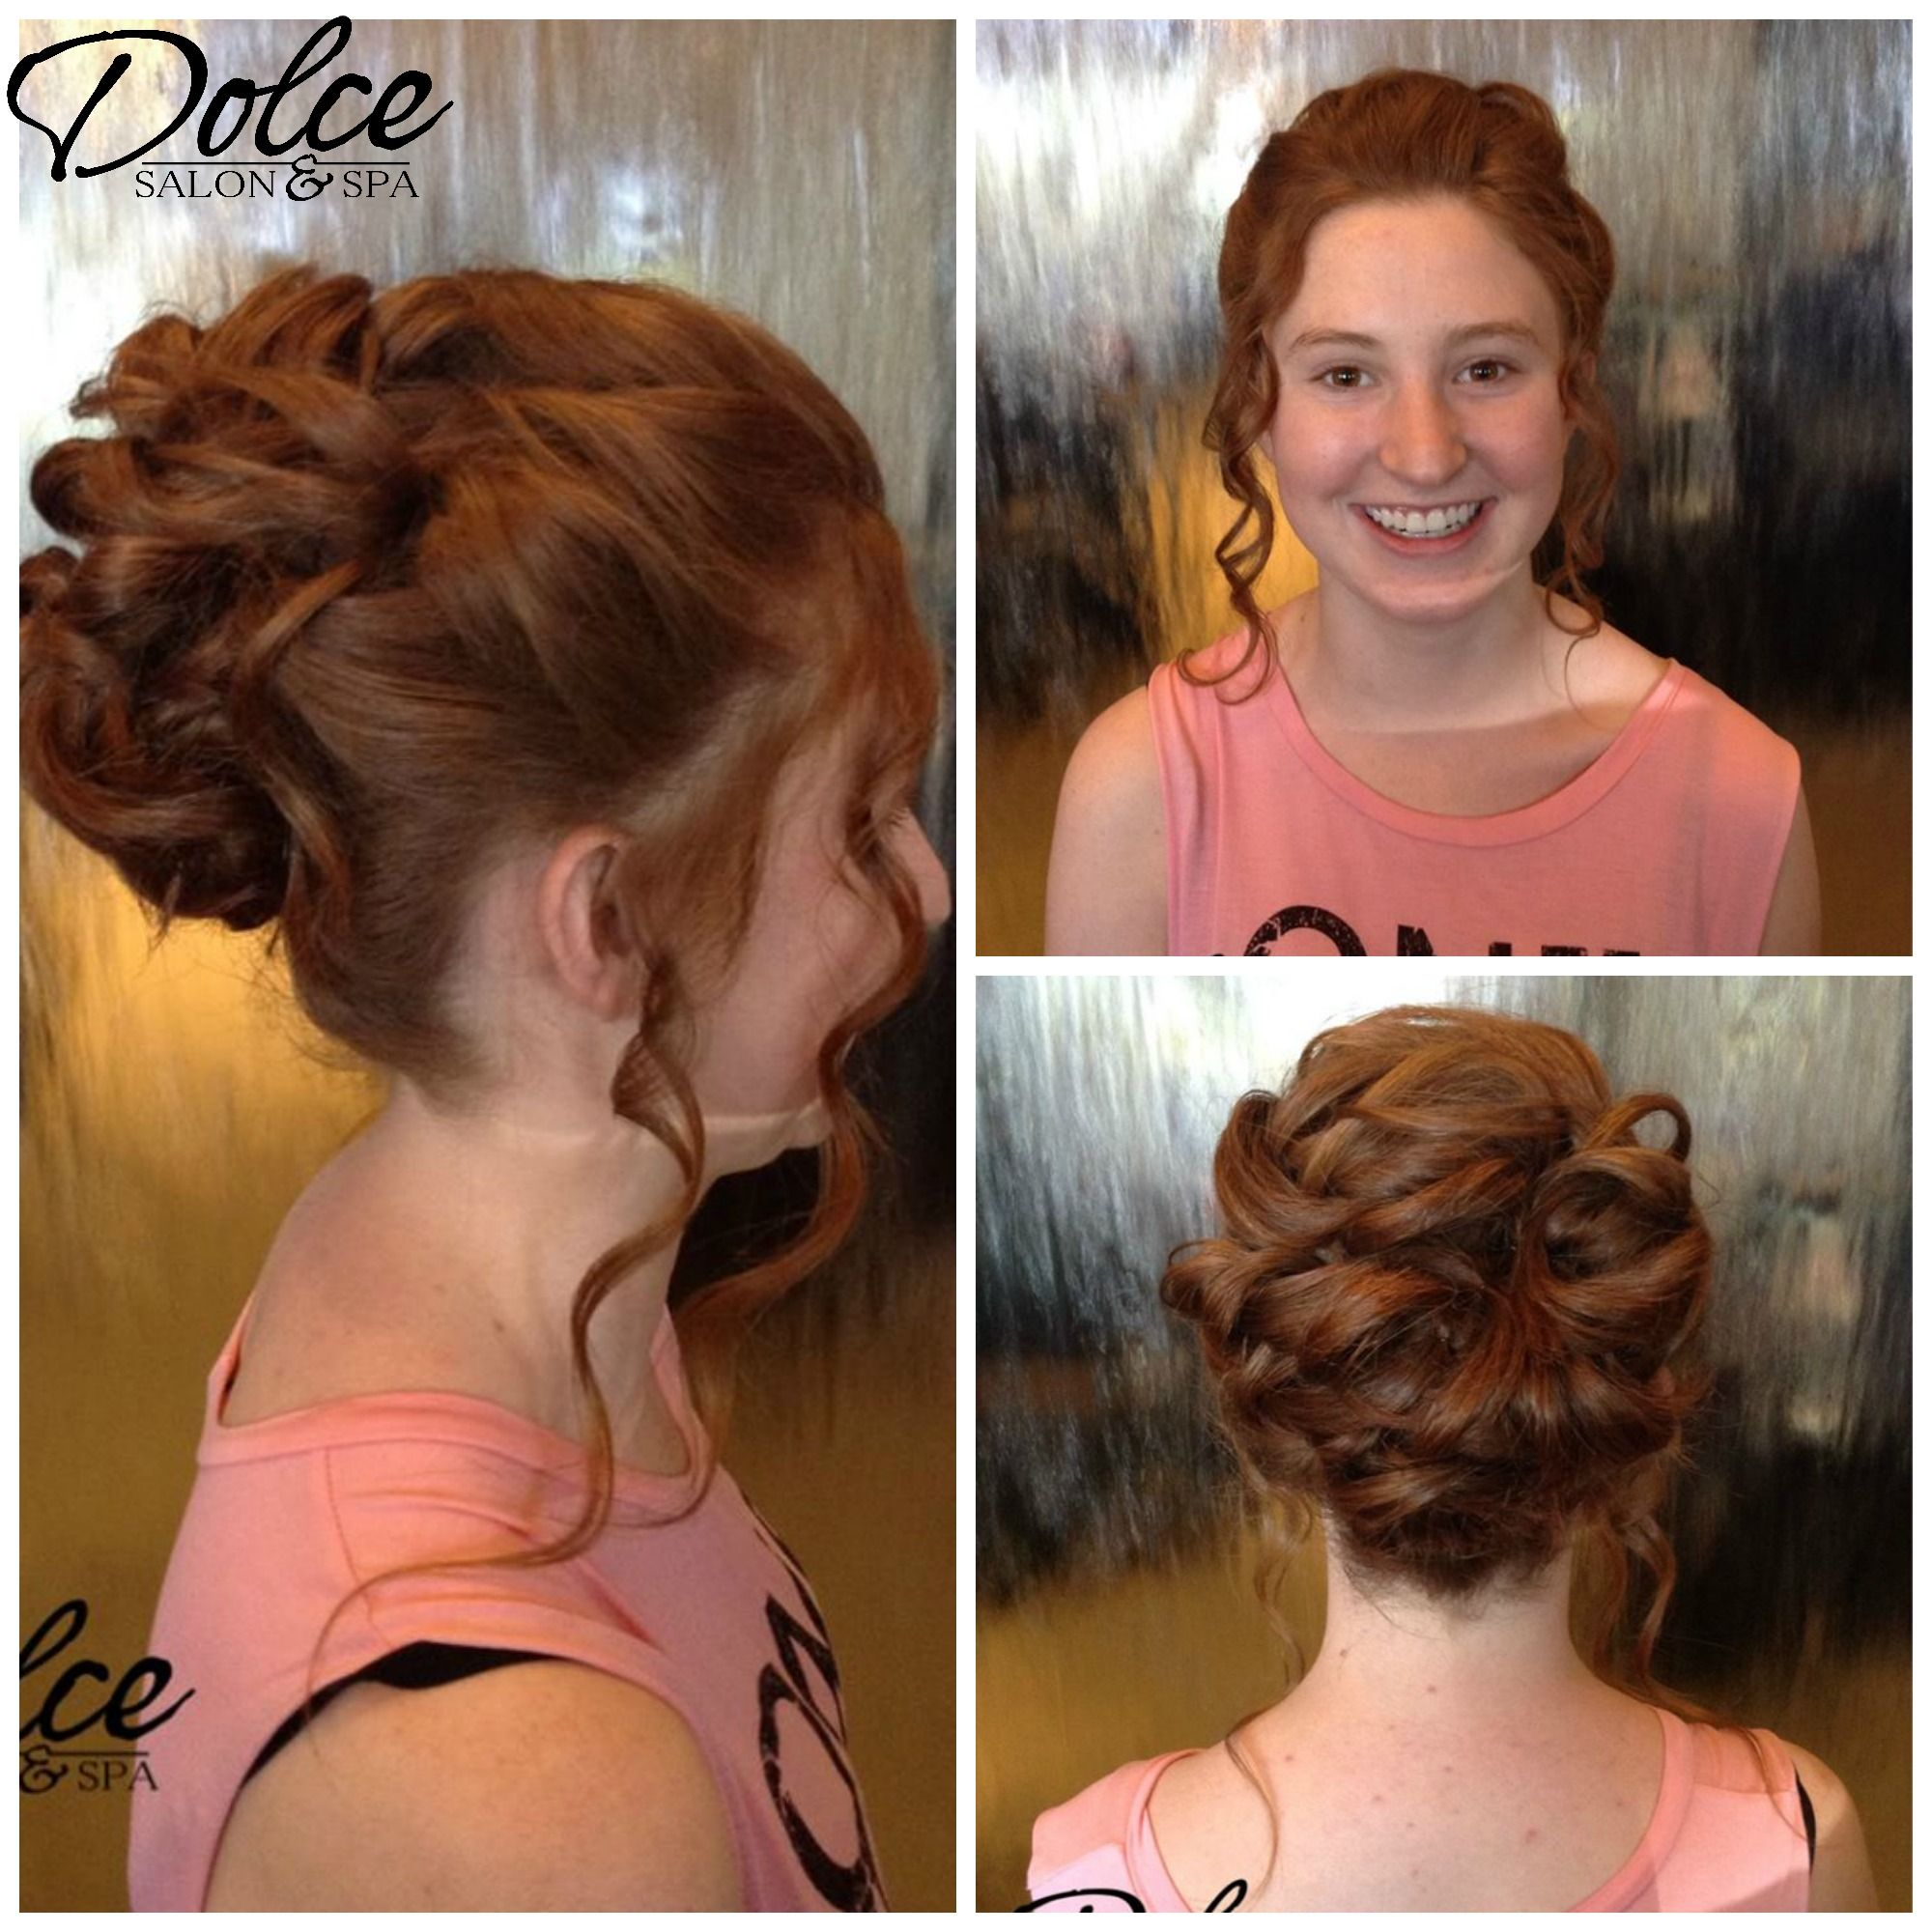 Curls for days from Betty at Chandler! Another beautiful prom style! Have you booked yours yet!?